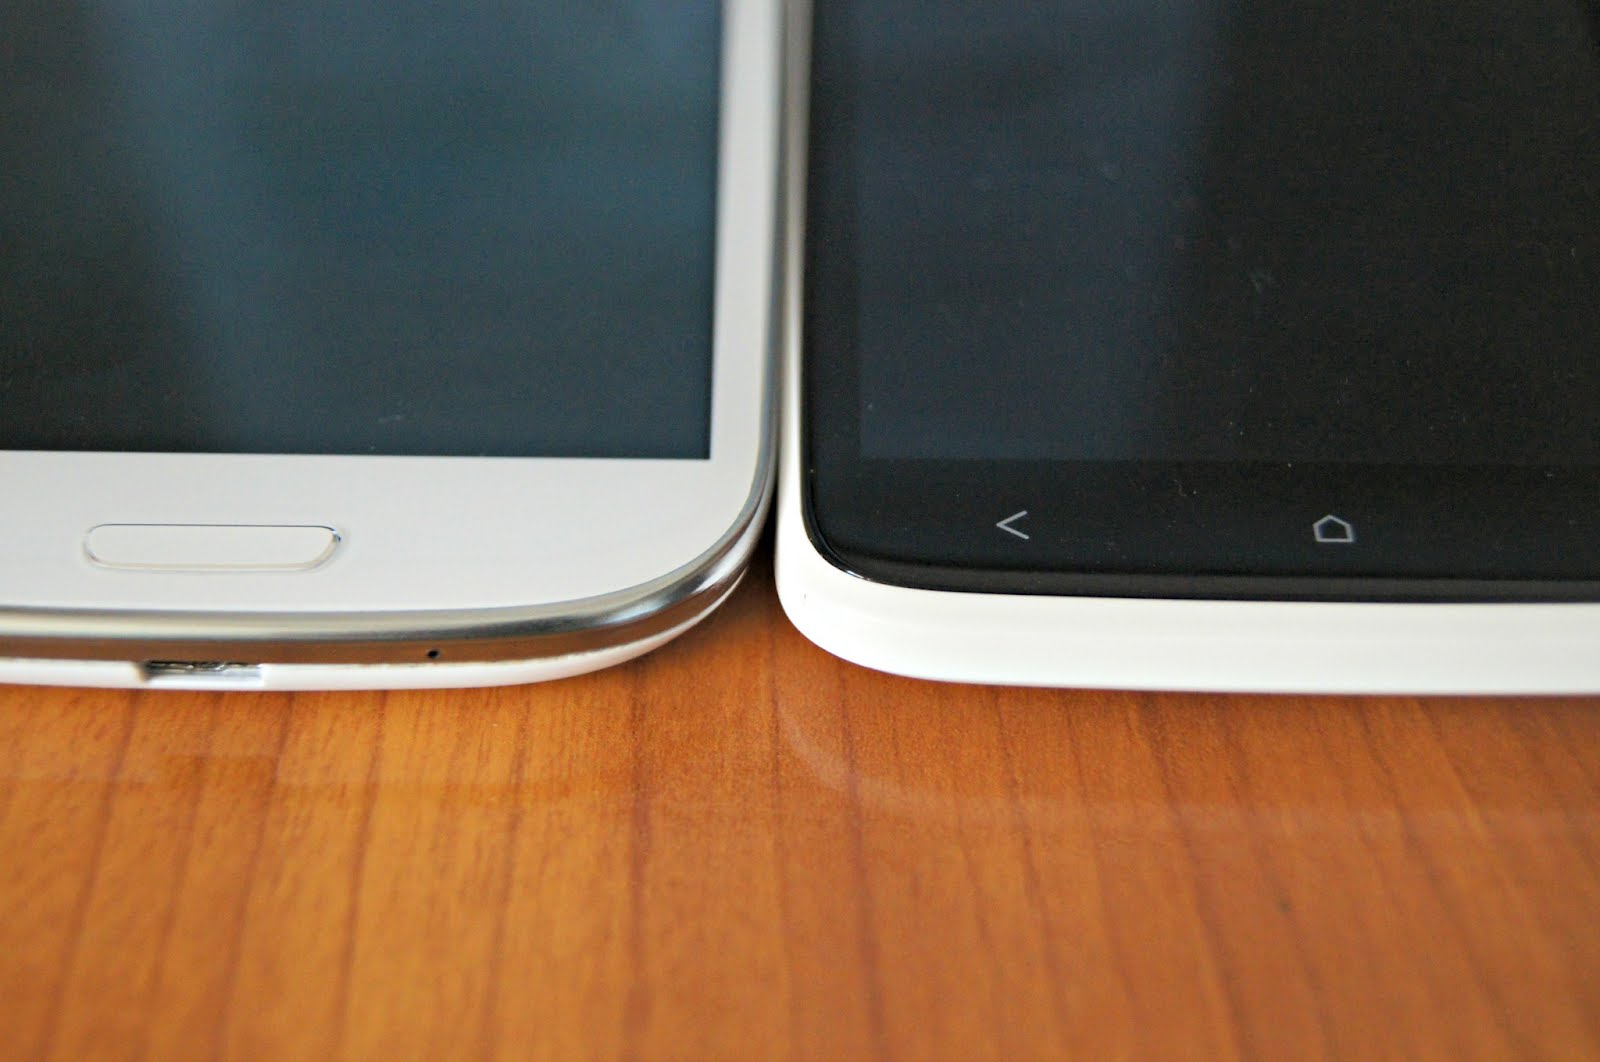 Samsung Galaxy S III versus HTC One X